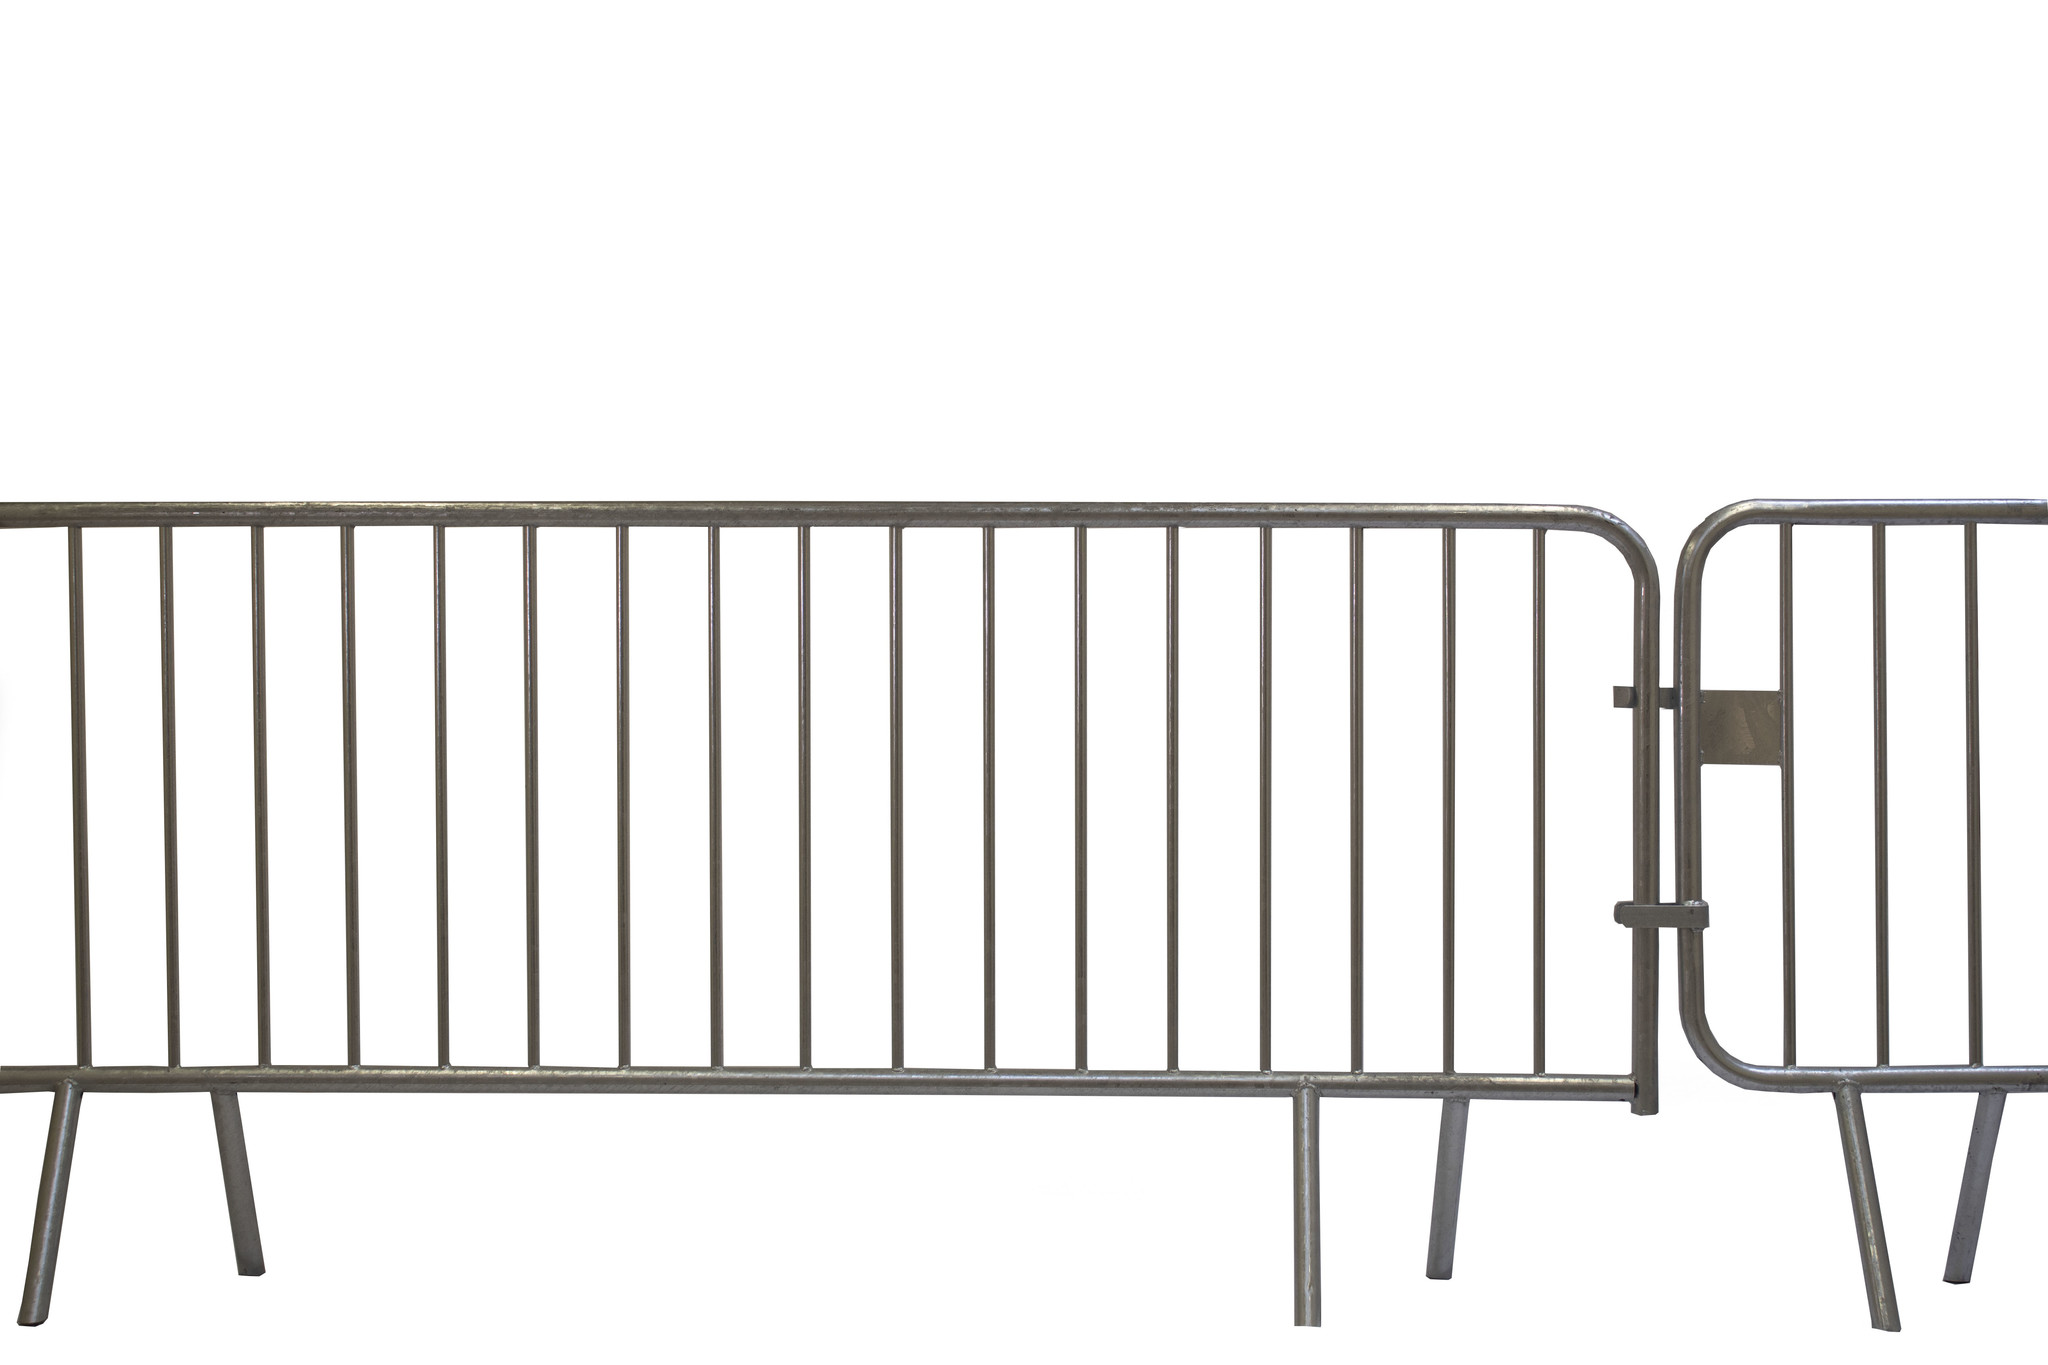 Crowd control barrier/Police barrier 14 bars - 200 x 110 cm